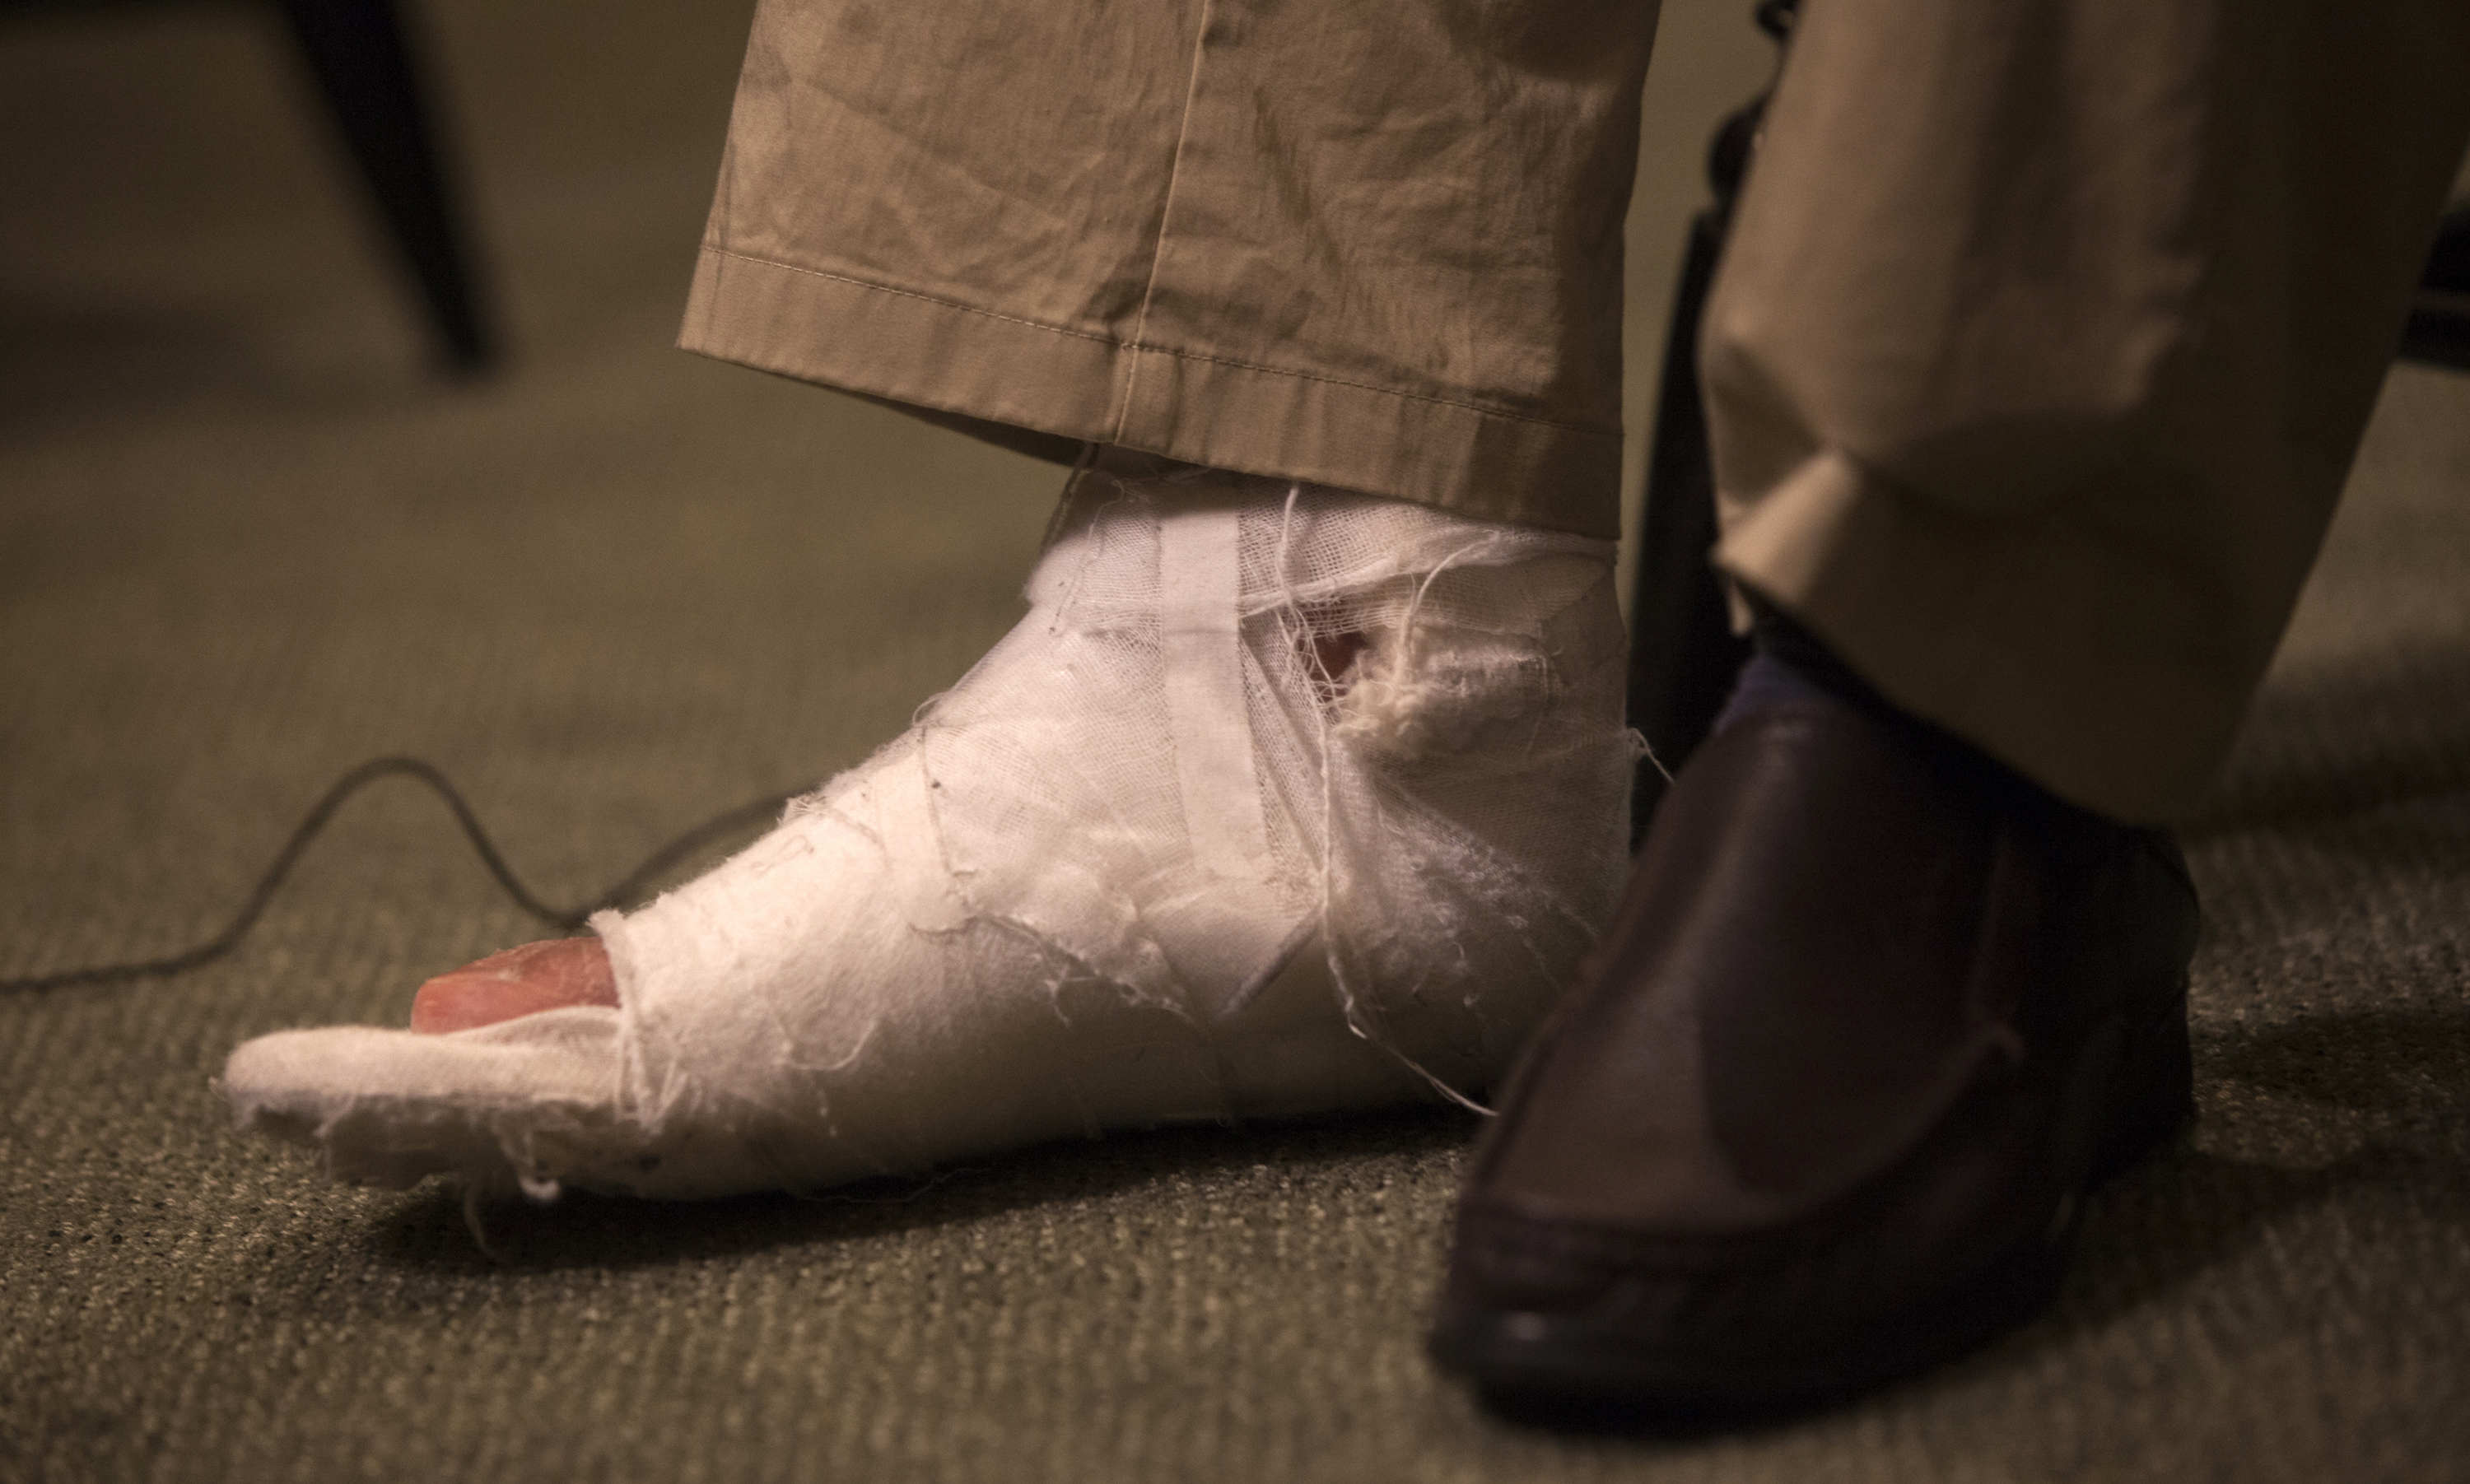 A cast is seen on the right foot of Chen Guangcheng, the blind Chinese dissident and legal advocate who recently sought asylum in the United States, during an interview in New York May 24, 2012. Blind Chinese activist Chen, who flew to the United States last week, said on Thursday China's handling of the local officials who harassed and abused him and his family will determine whether the country can begin to achieve rule of law.   REUTERS/Shannon Stapleton    (UNITED STATES SOCIETY - Tags: POLITICS) - RTR32L5H